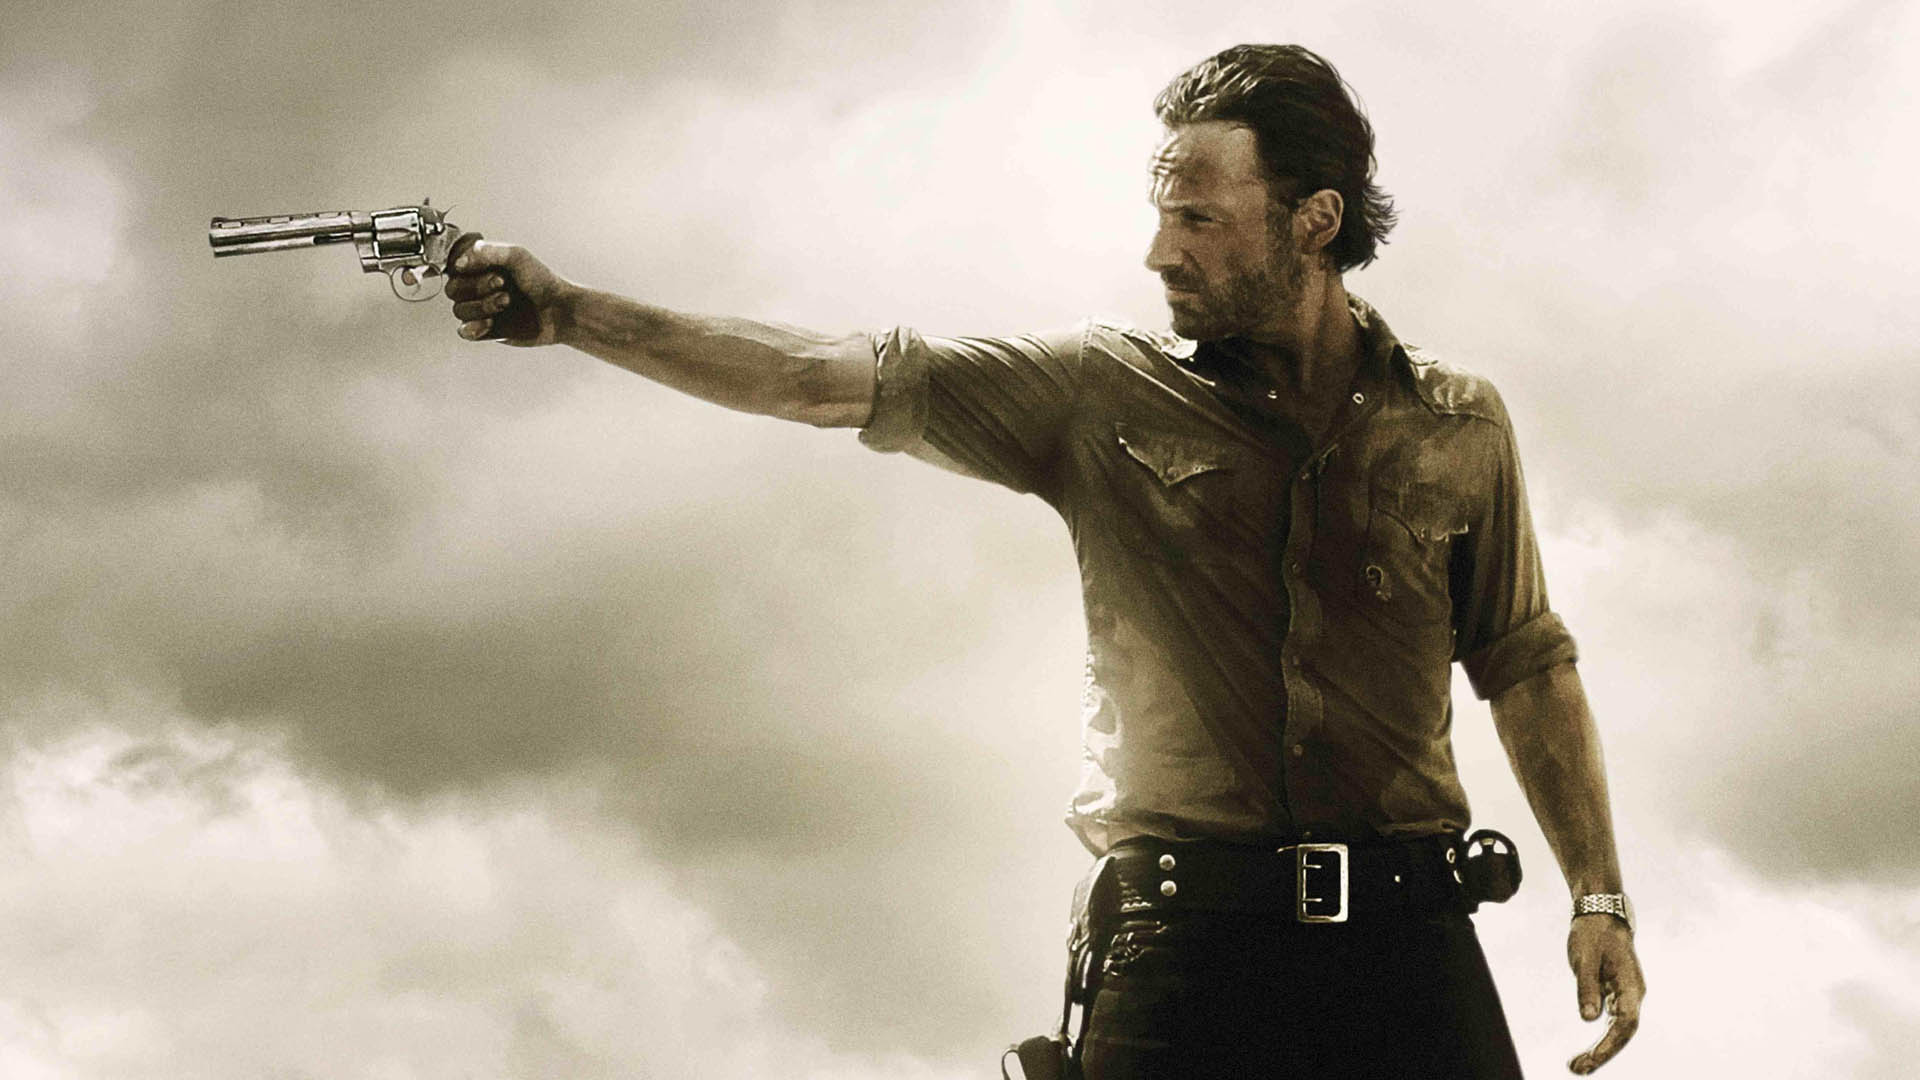 Rick From TWD